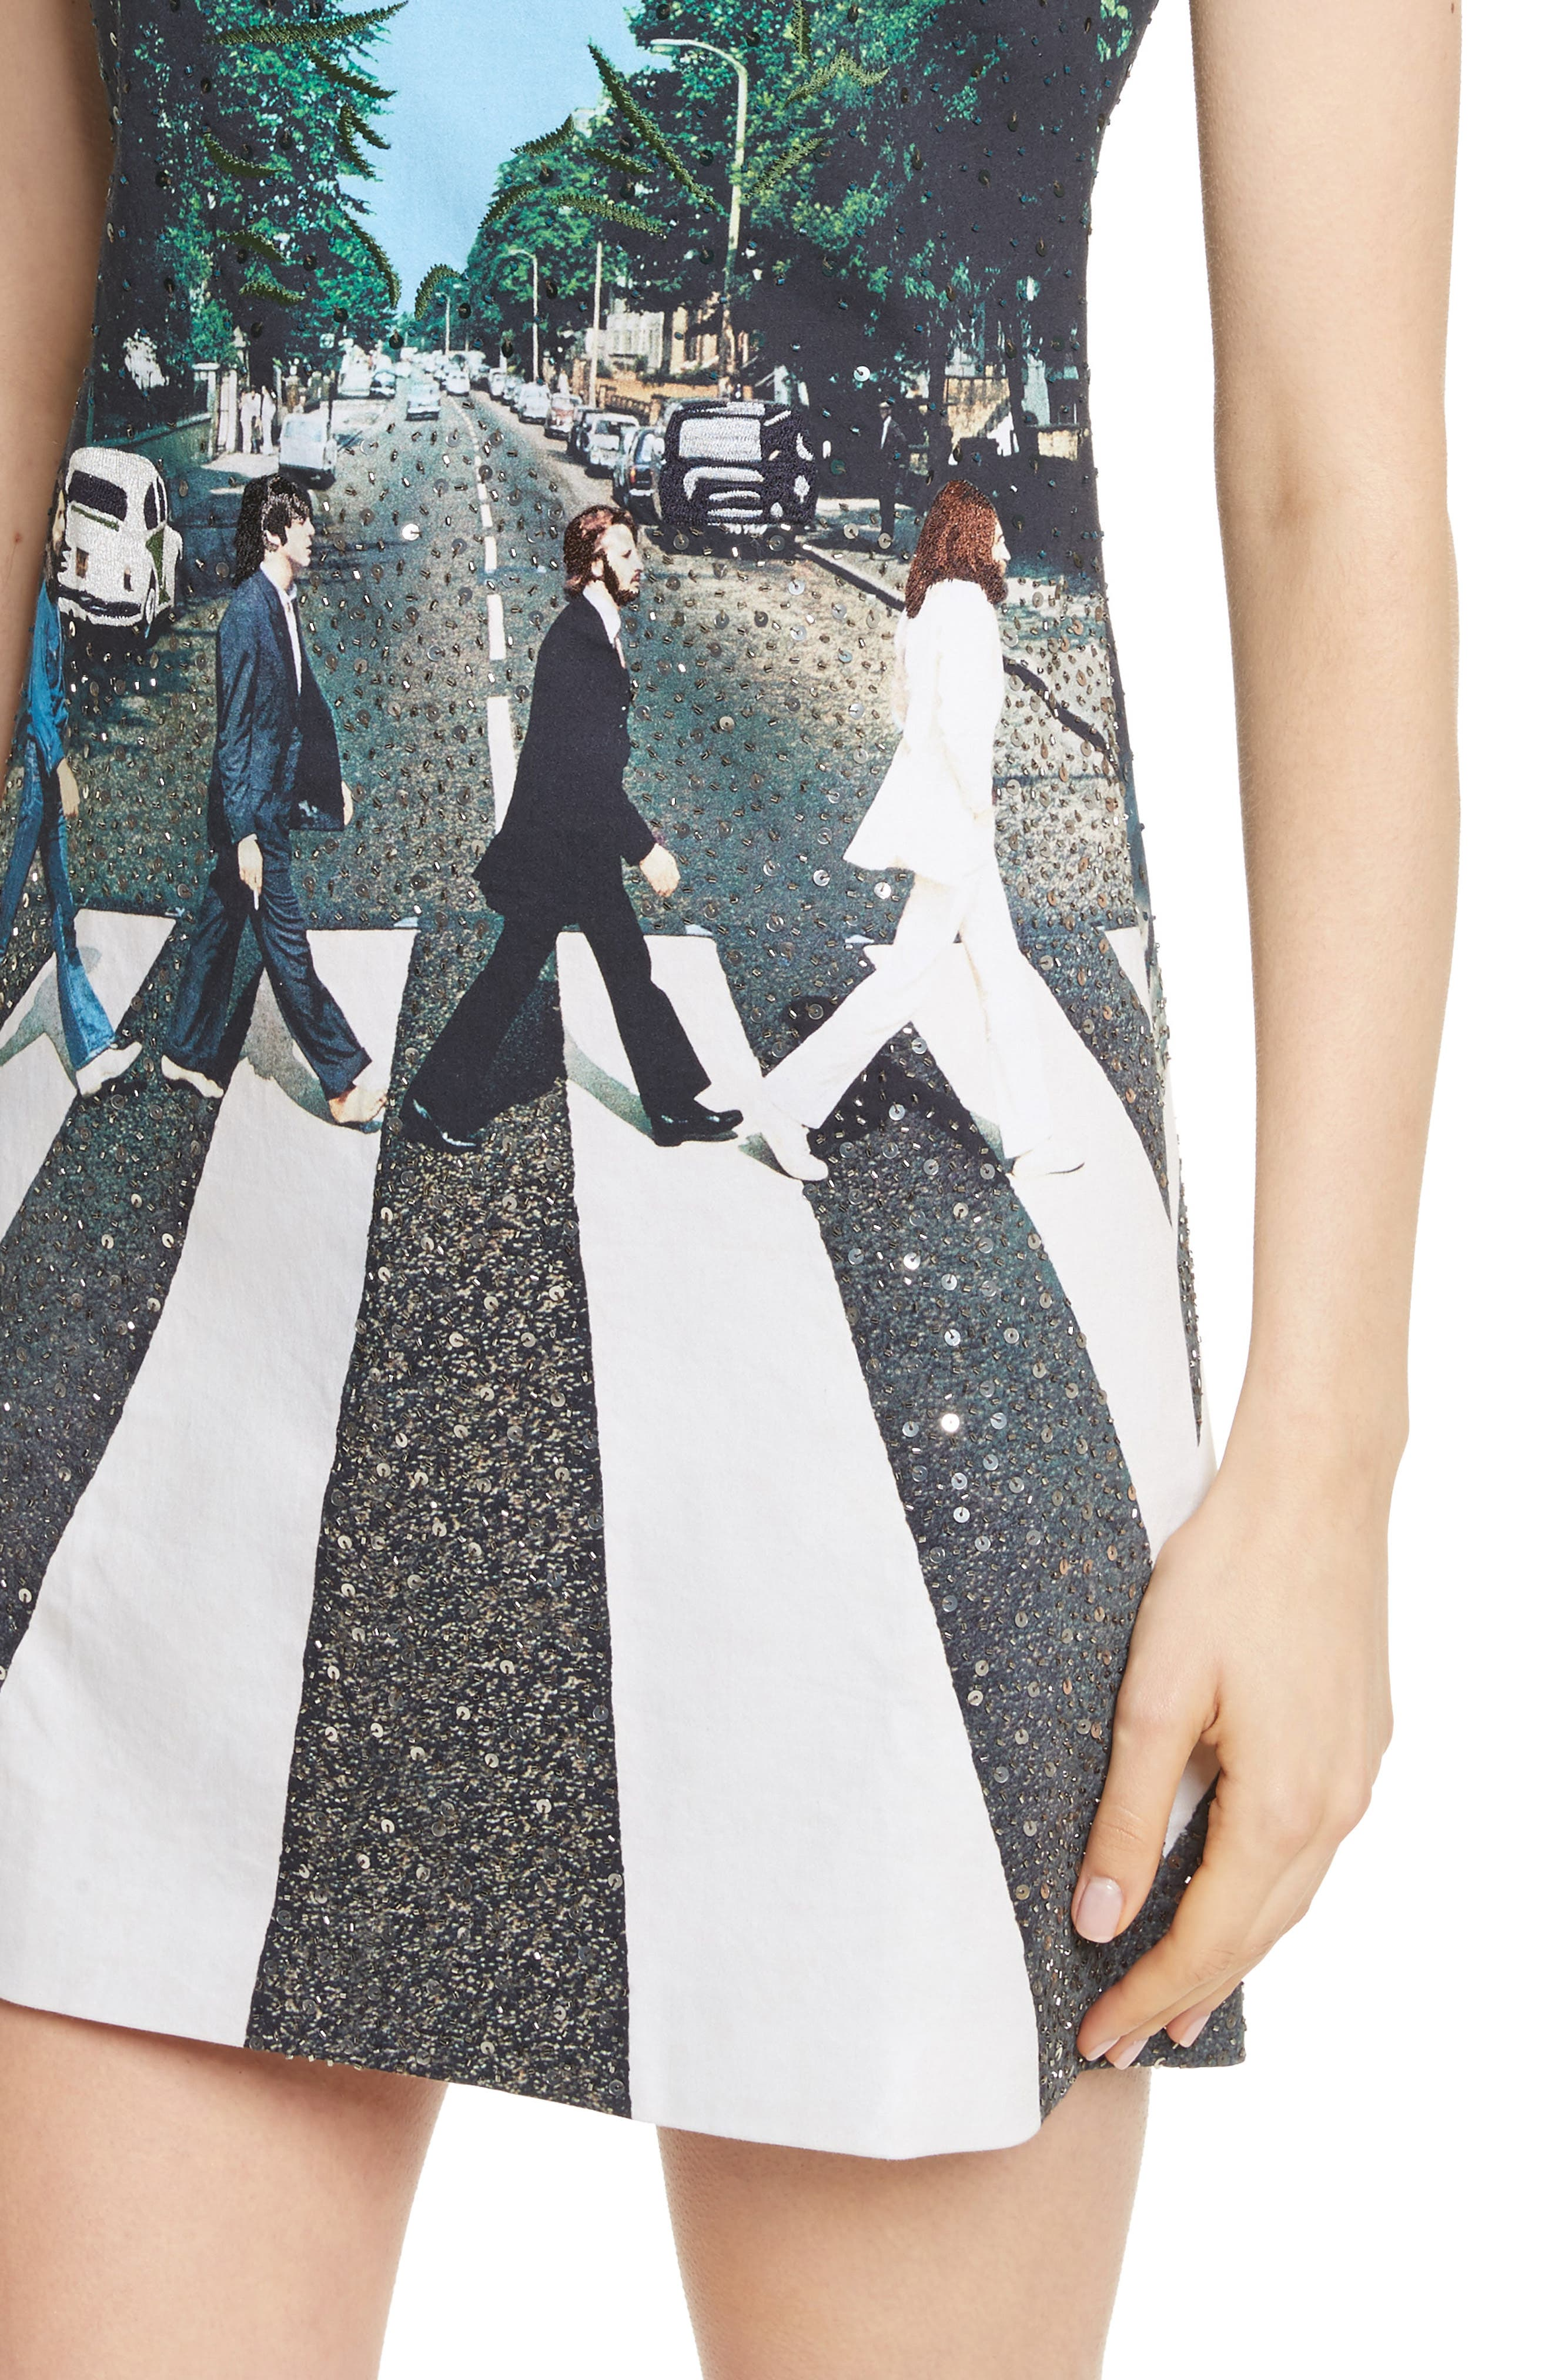 ALICE + OLIVIA,                             AO x The Beatles Sequined Shift Dress,                             Alternate thumbnail 4, color,                             473